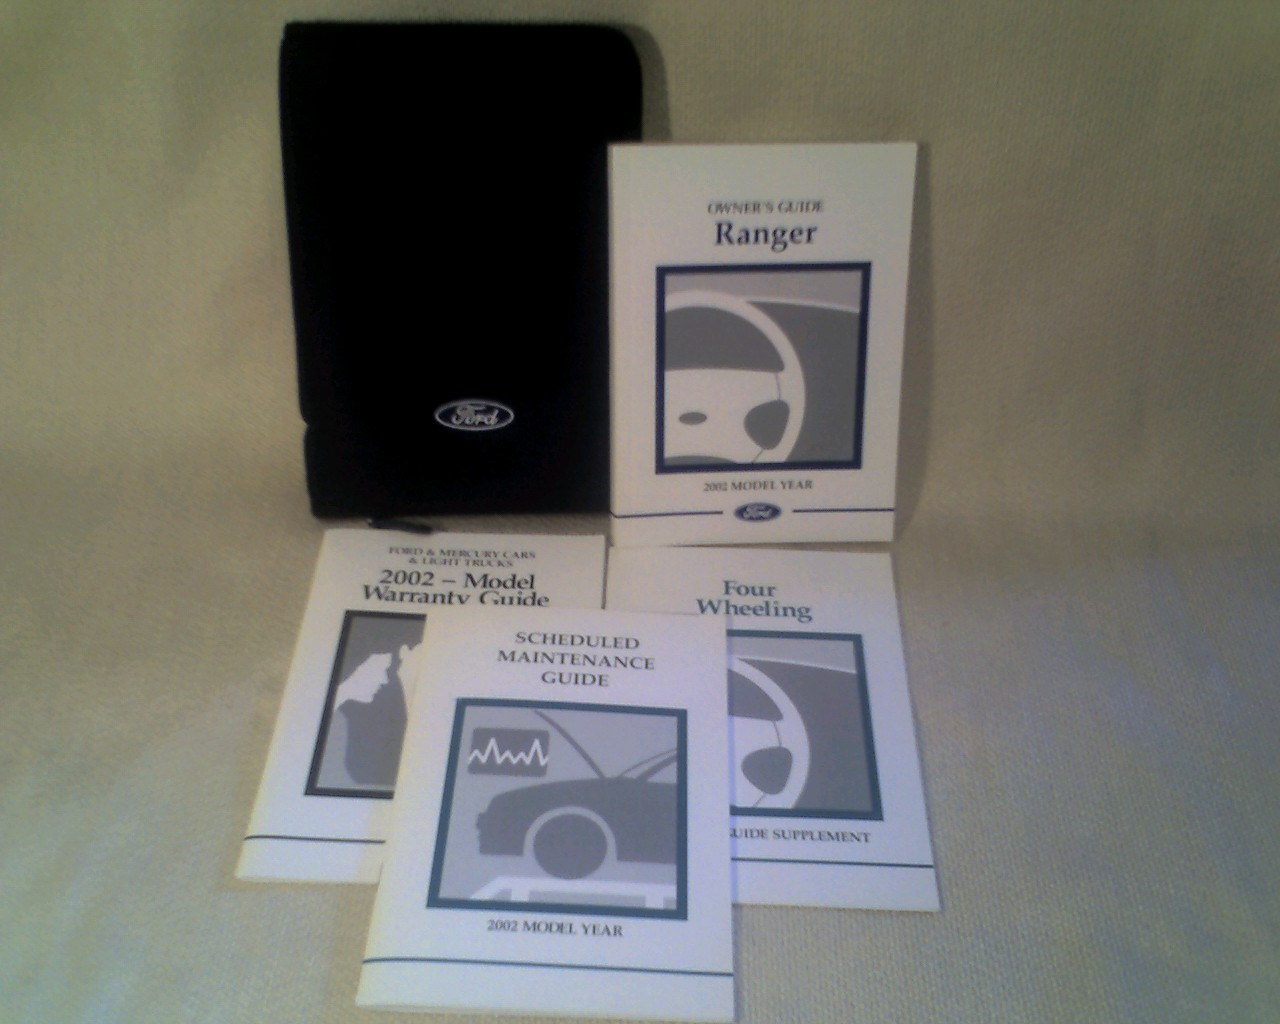 ford owners manual rh cars etc com 2000 Ford Ranger Parts Manual owners manual 2004 ford ranger